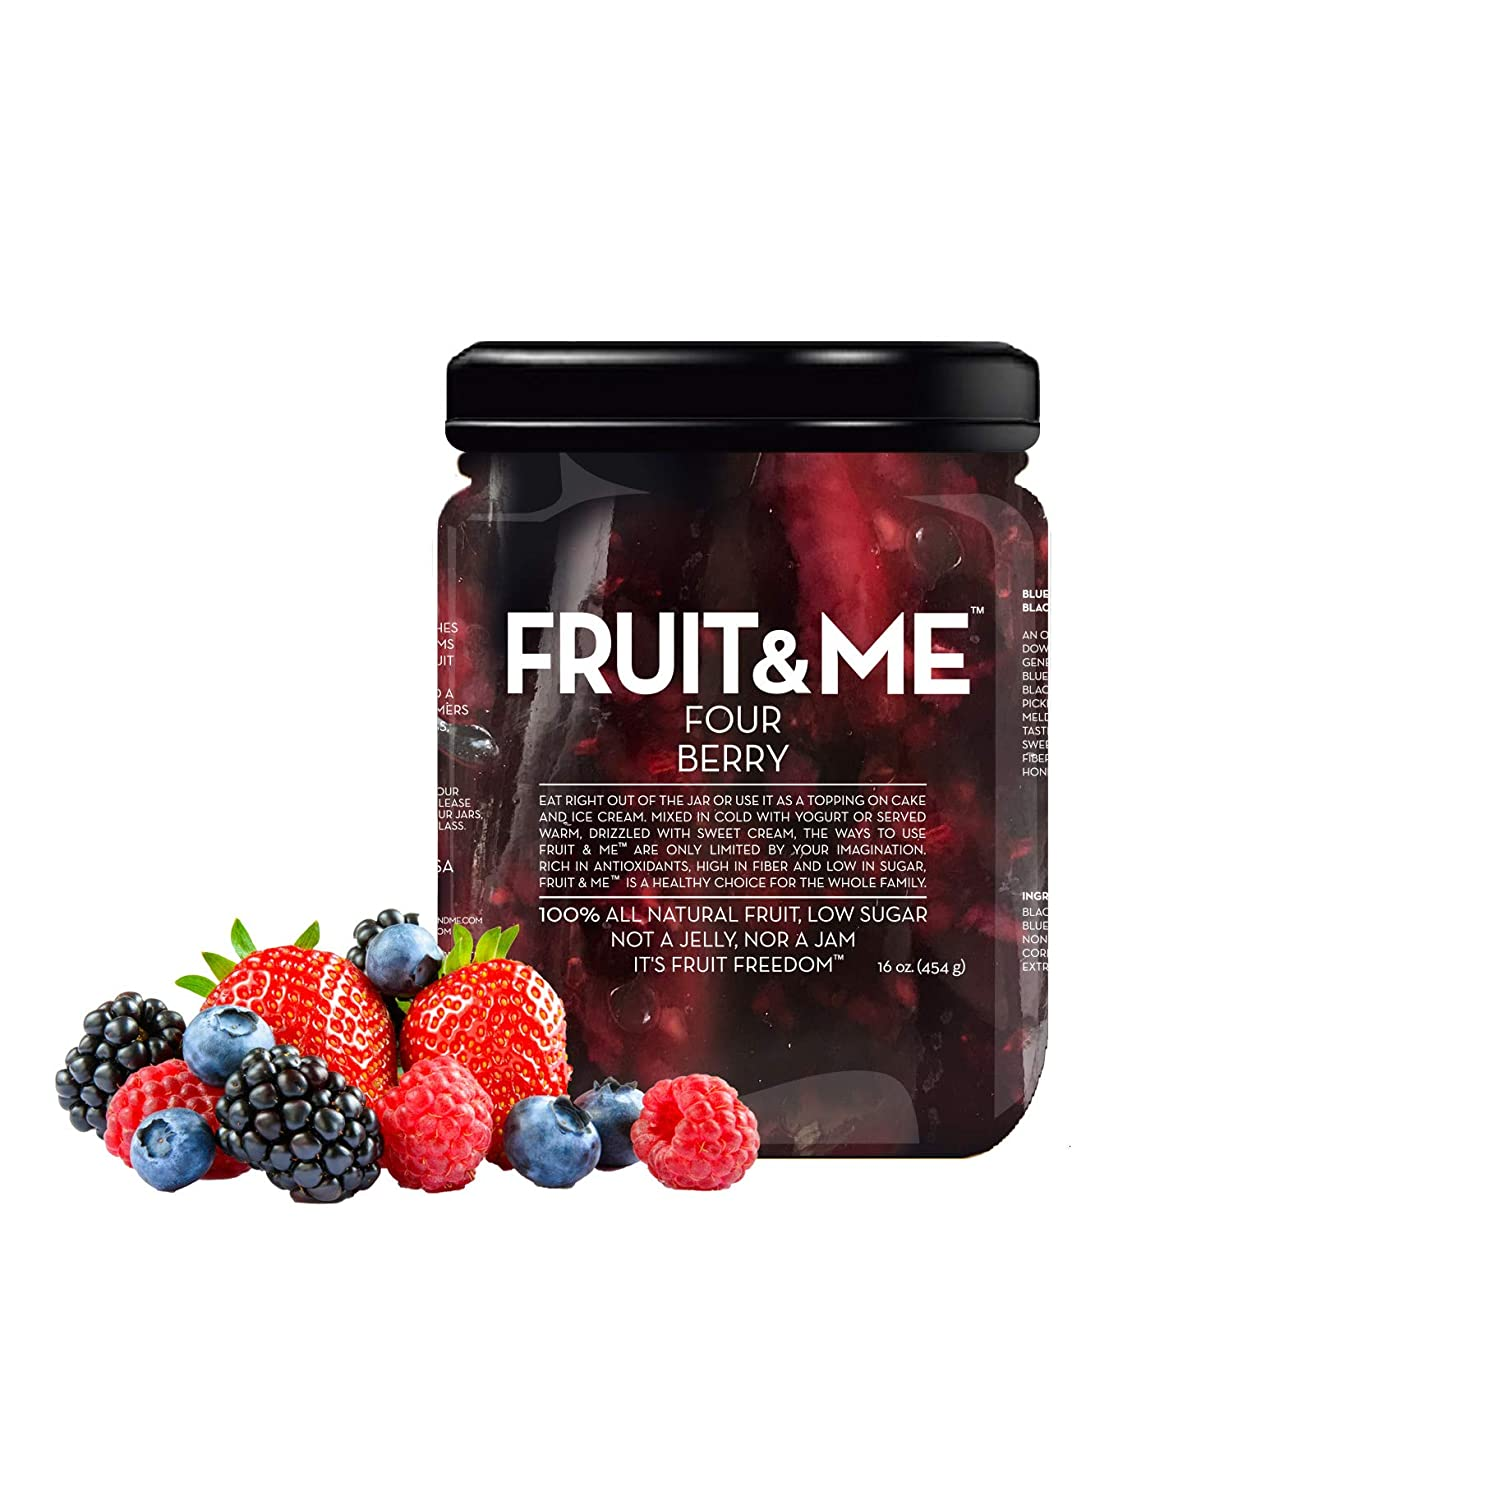 FRUIT ME FOUR BERRY Strawberries Blackberries Max 72% OFF Blueberries Year-end gift